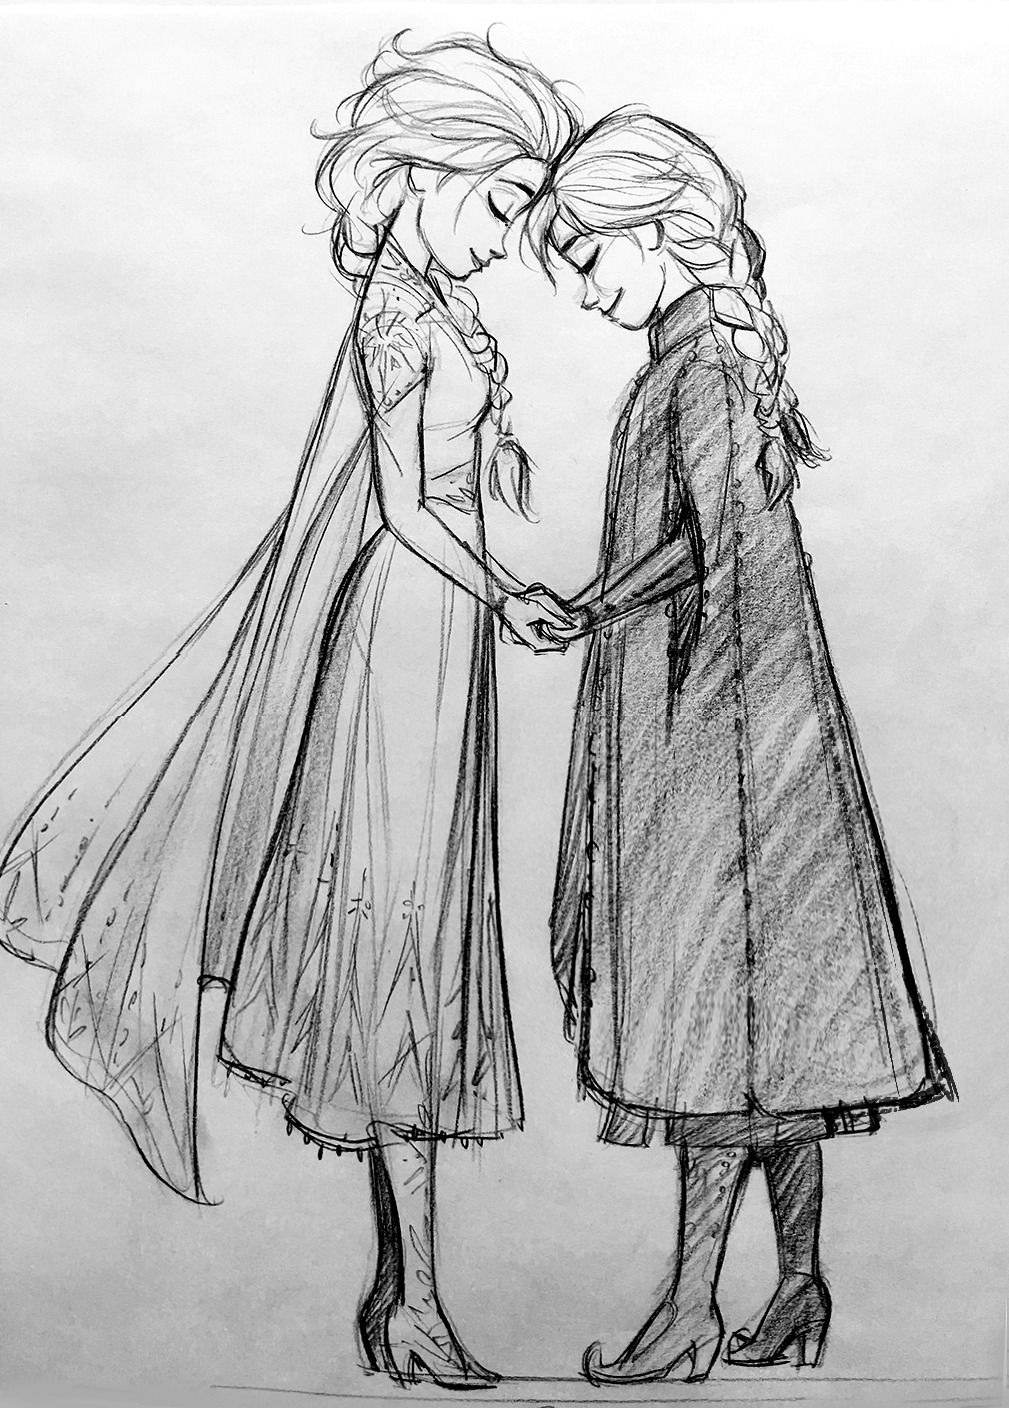 Frozen 2 Is Here Finally So Much Fun To Draw Cosmoanimato In 2020 Disney Character Drawings Disney Drawings Sketches Frozen Drawings